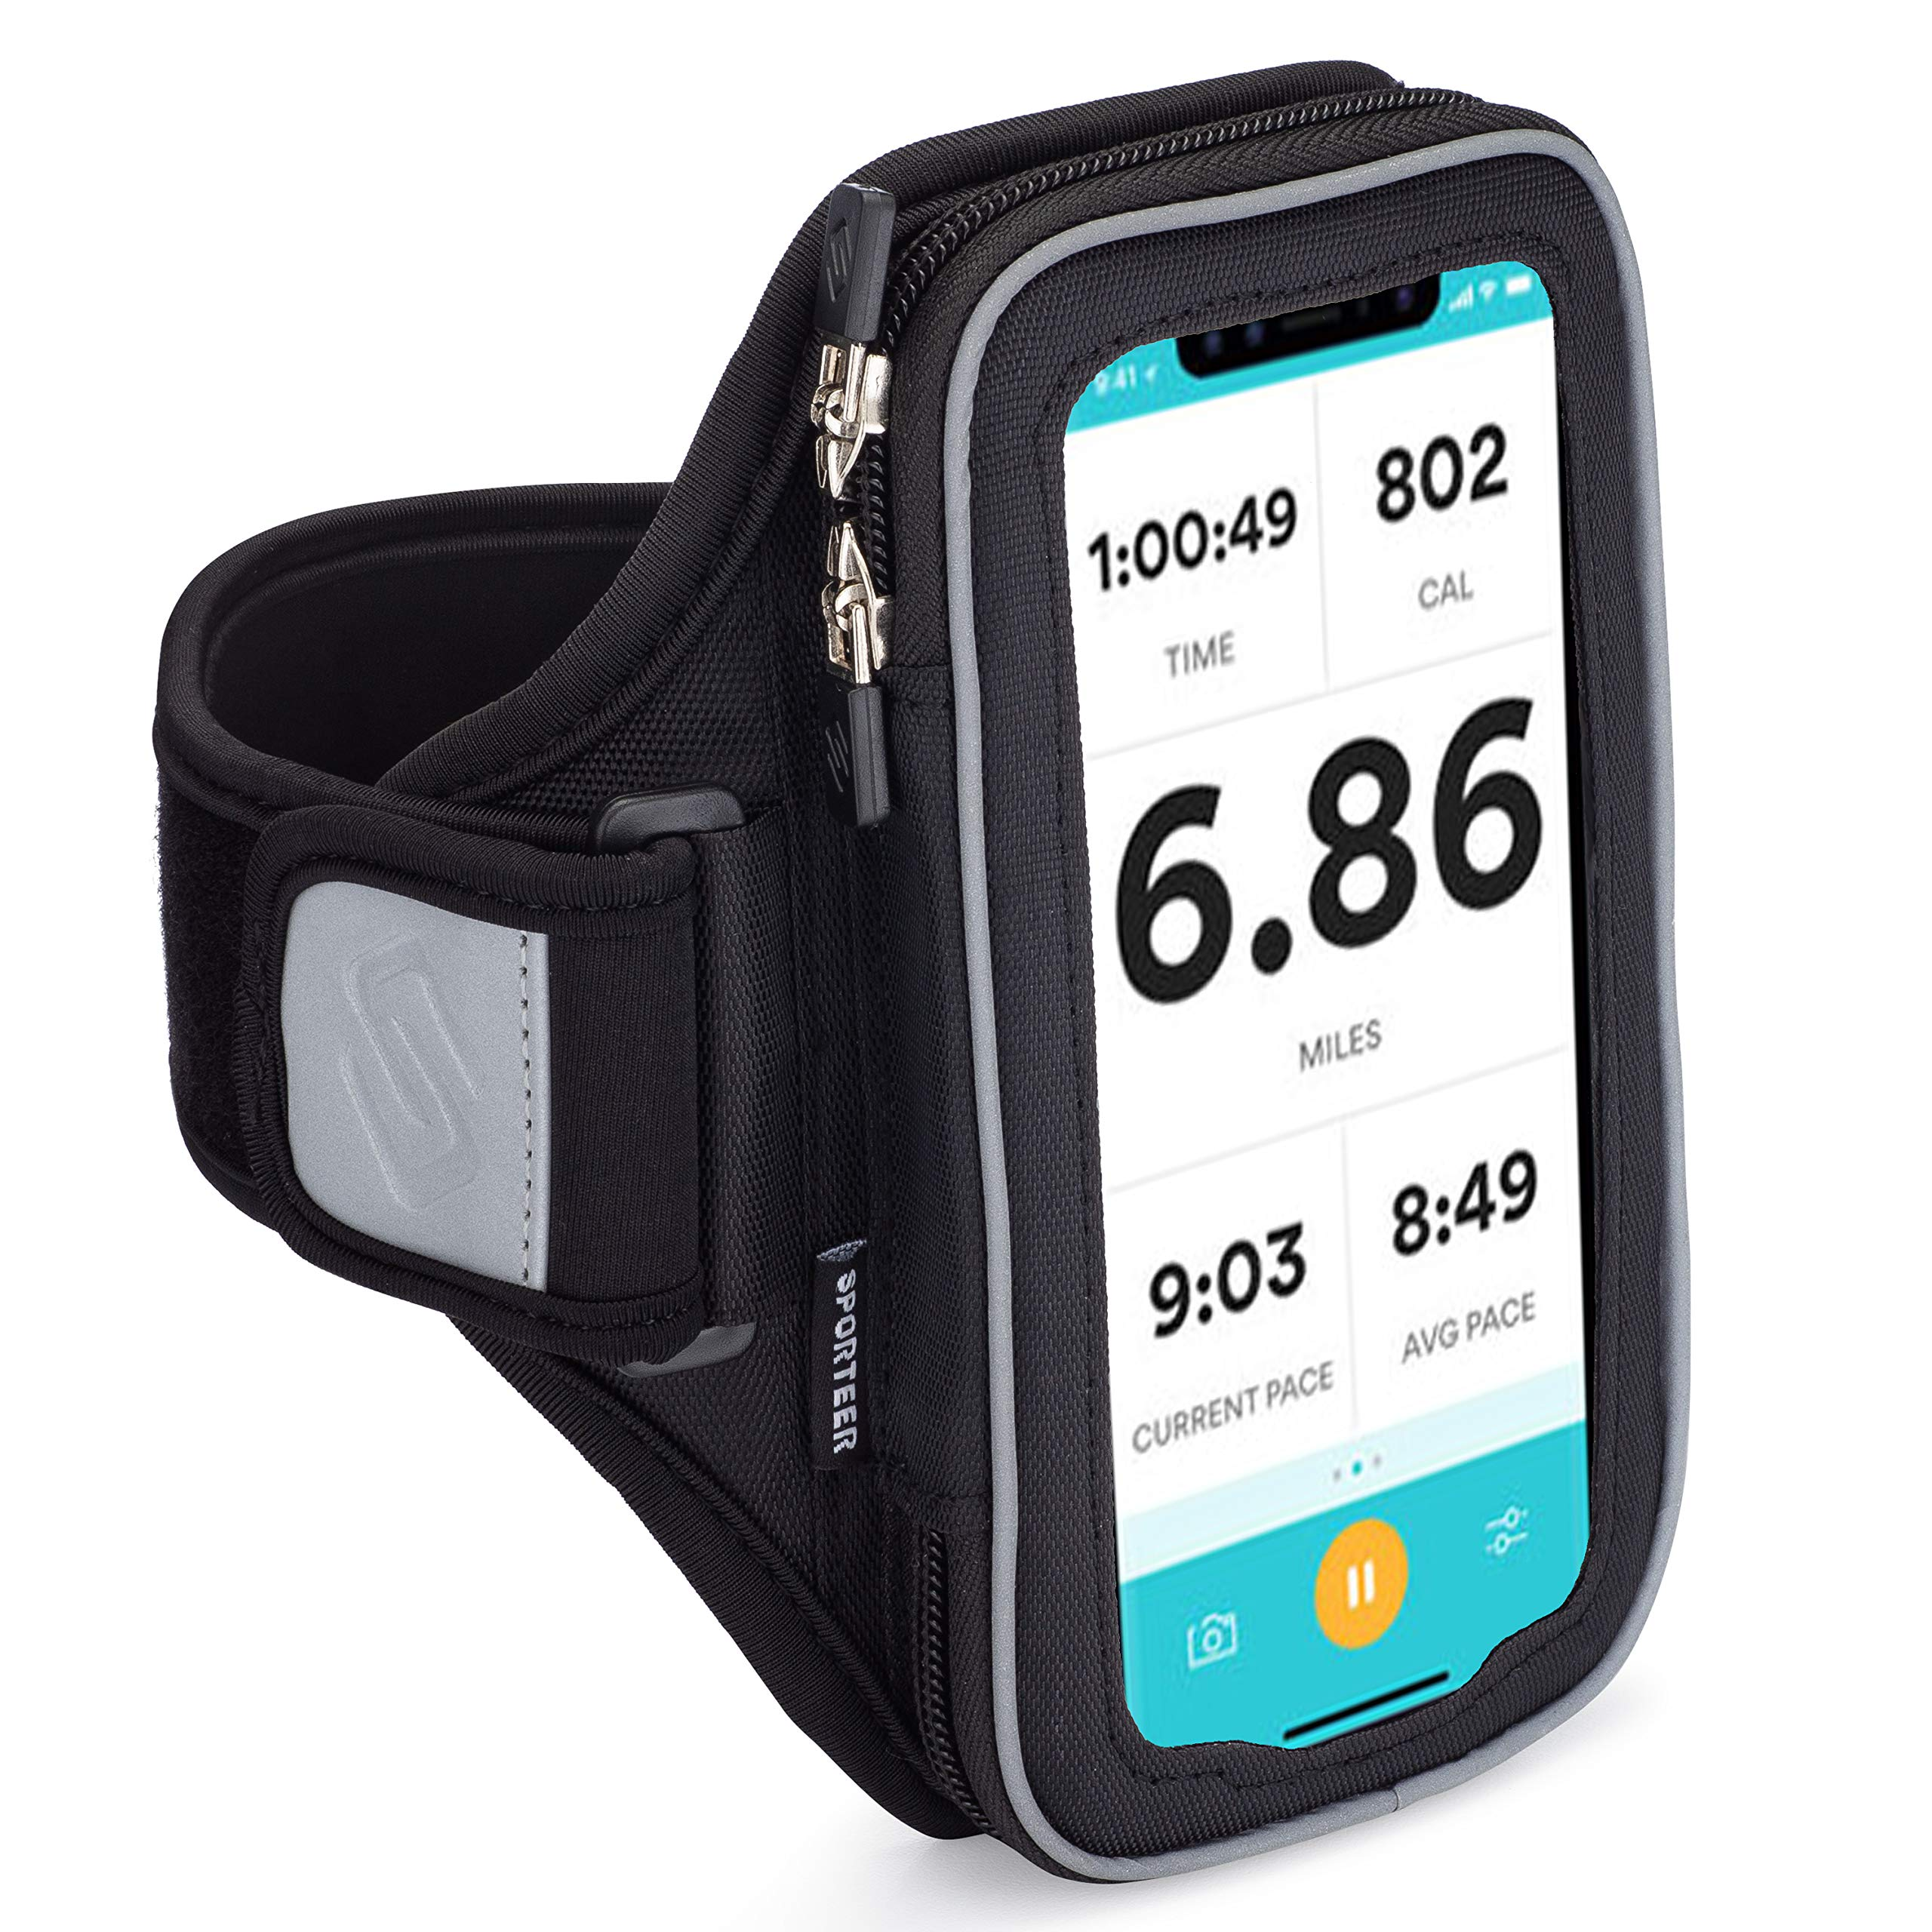 Sporteer Velocity V6 Running Armband - Compatible with iPhone 11, XR, 11 Pro, Xs, 8, 7, Galaxy Note 10, Galaxy S10, S10e, S9, S8, Pixel 3, 3a, LG, Moto and More - Fits Most Cases (Small/Medium) by Sporteer